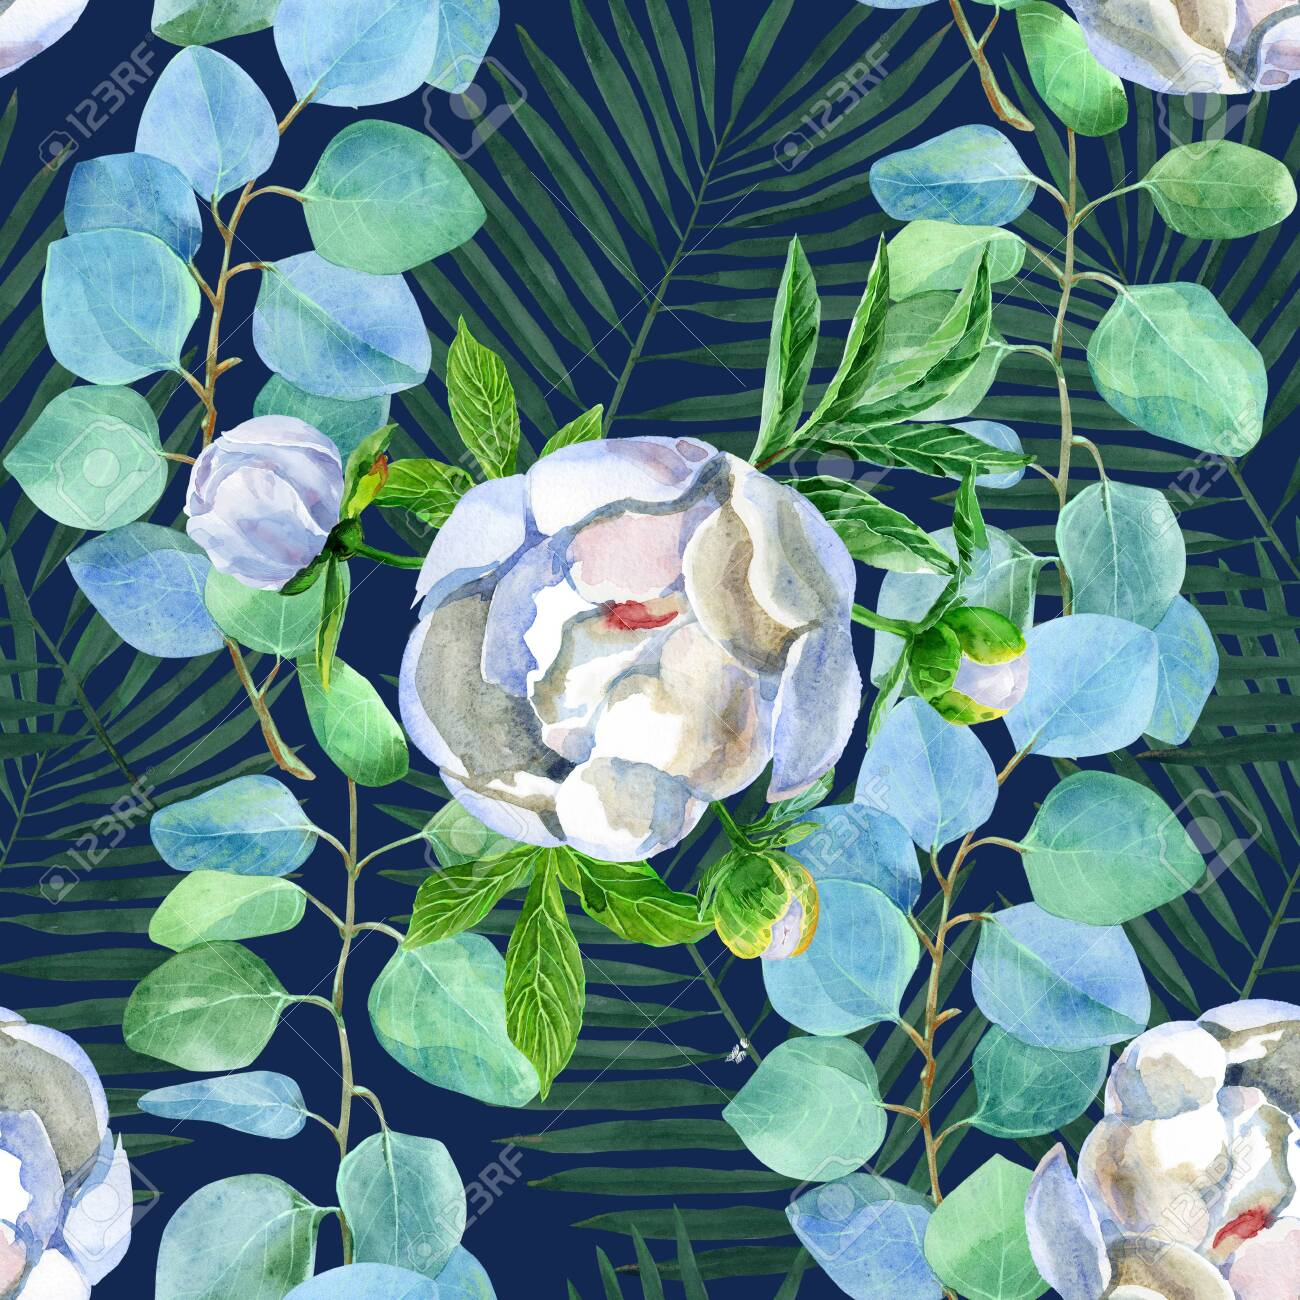 Floral Seamless Pattern With Eucalyptus And Peonies On A Navy